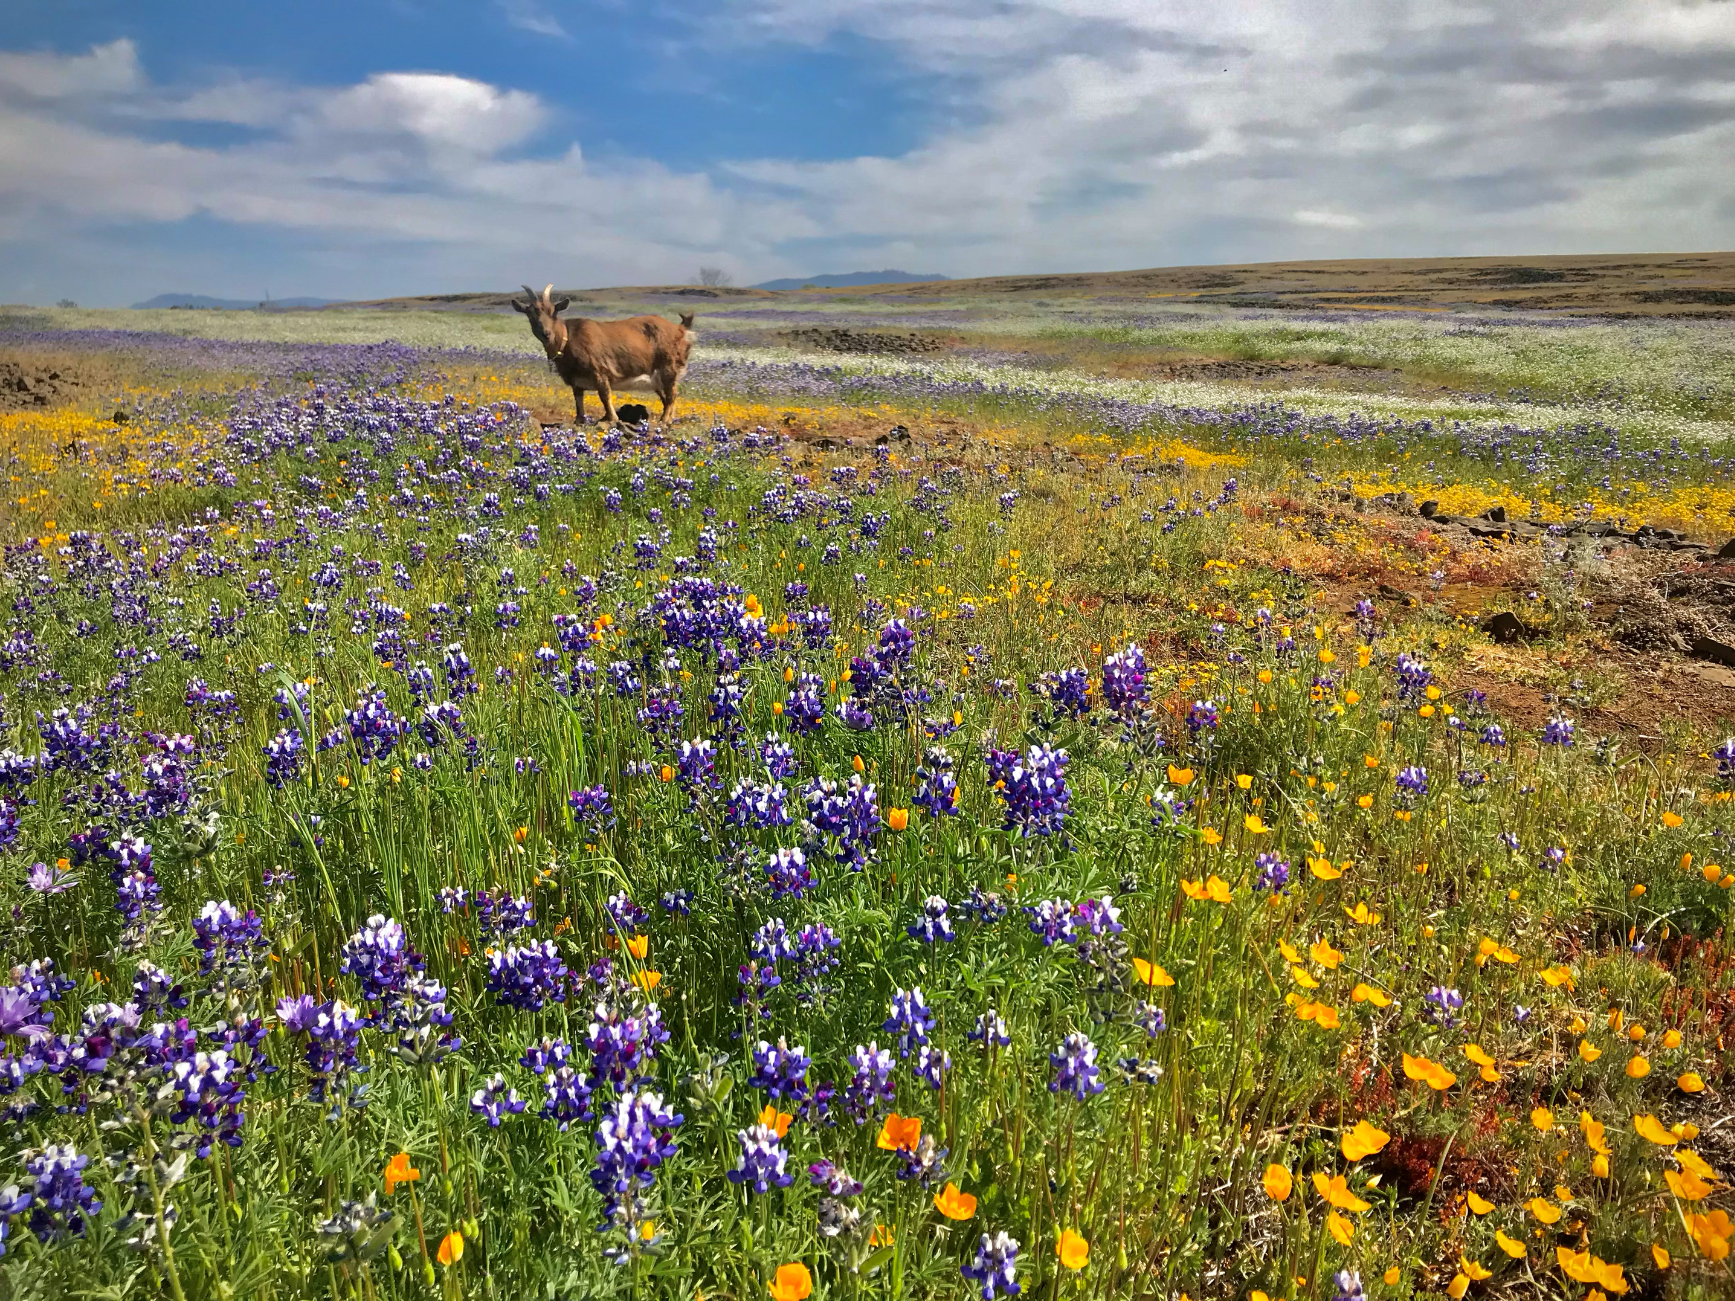 A goat stands amid a sea of wildflowers.